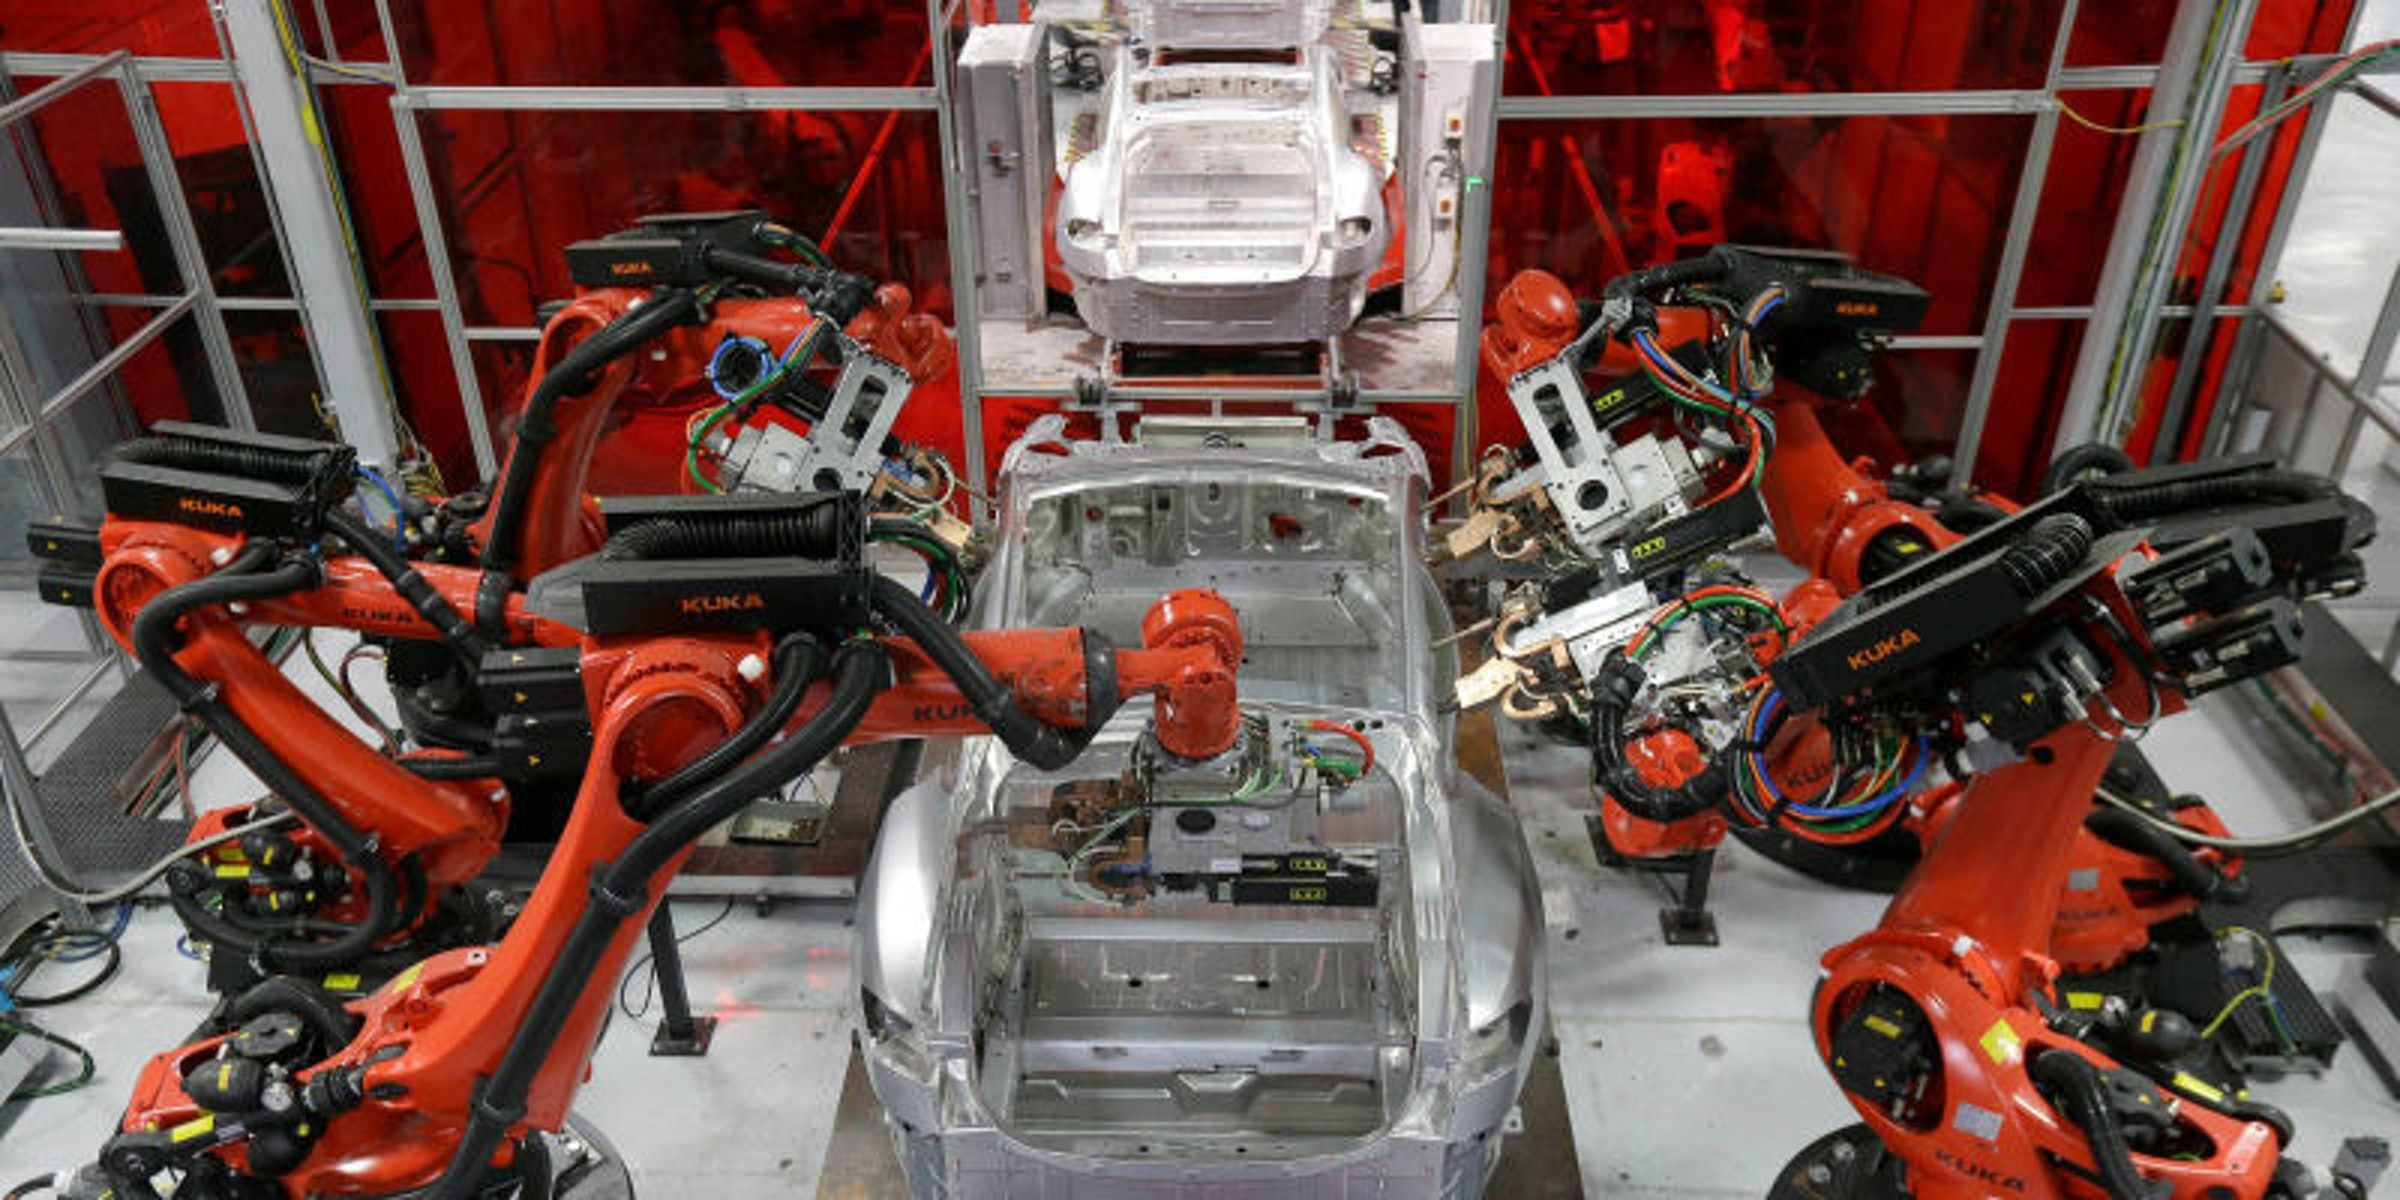 Robots Will Save American Jobs Resistanceisfutile